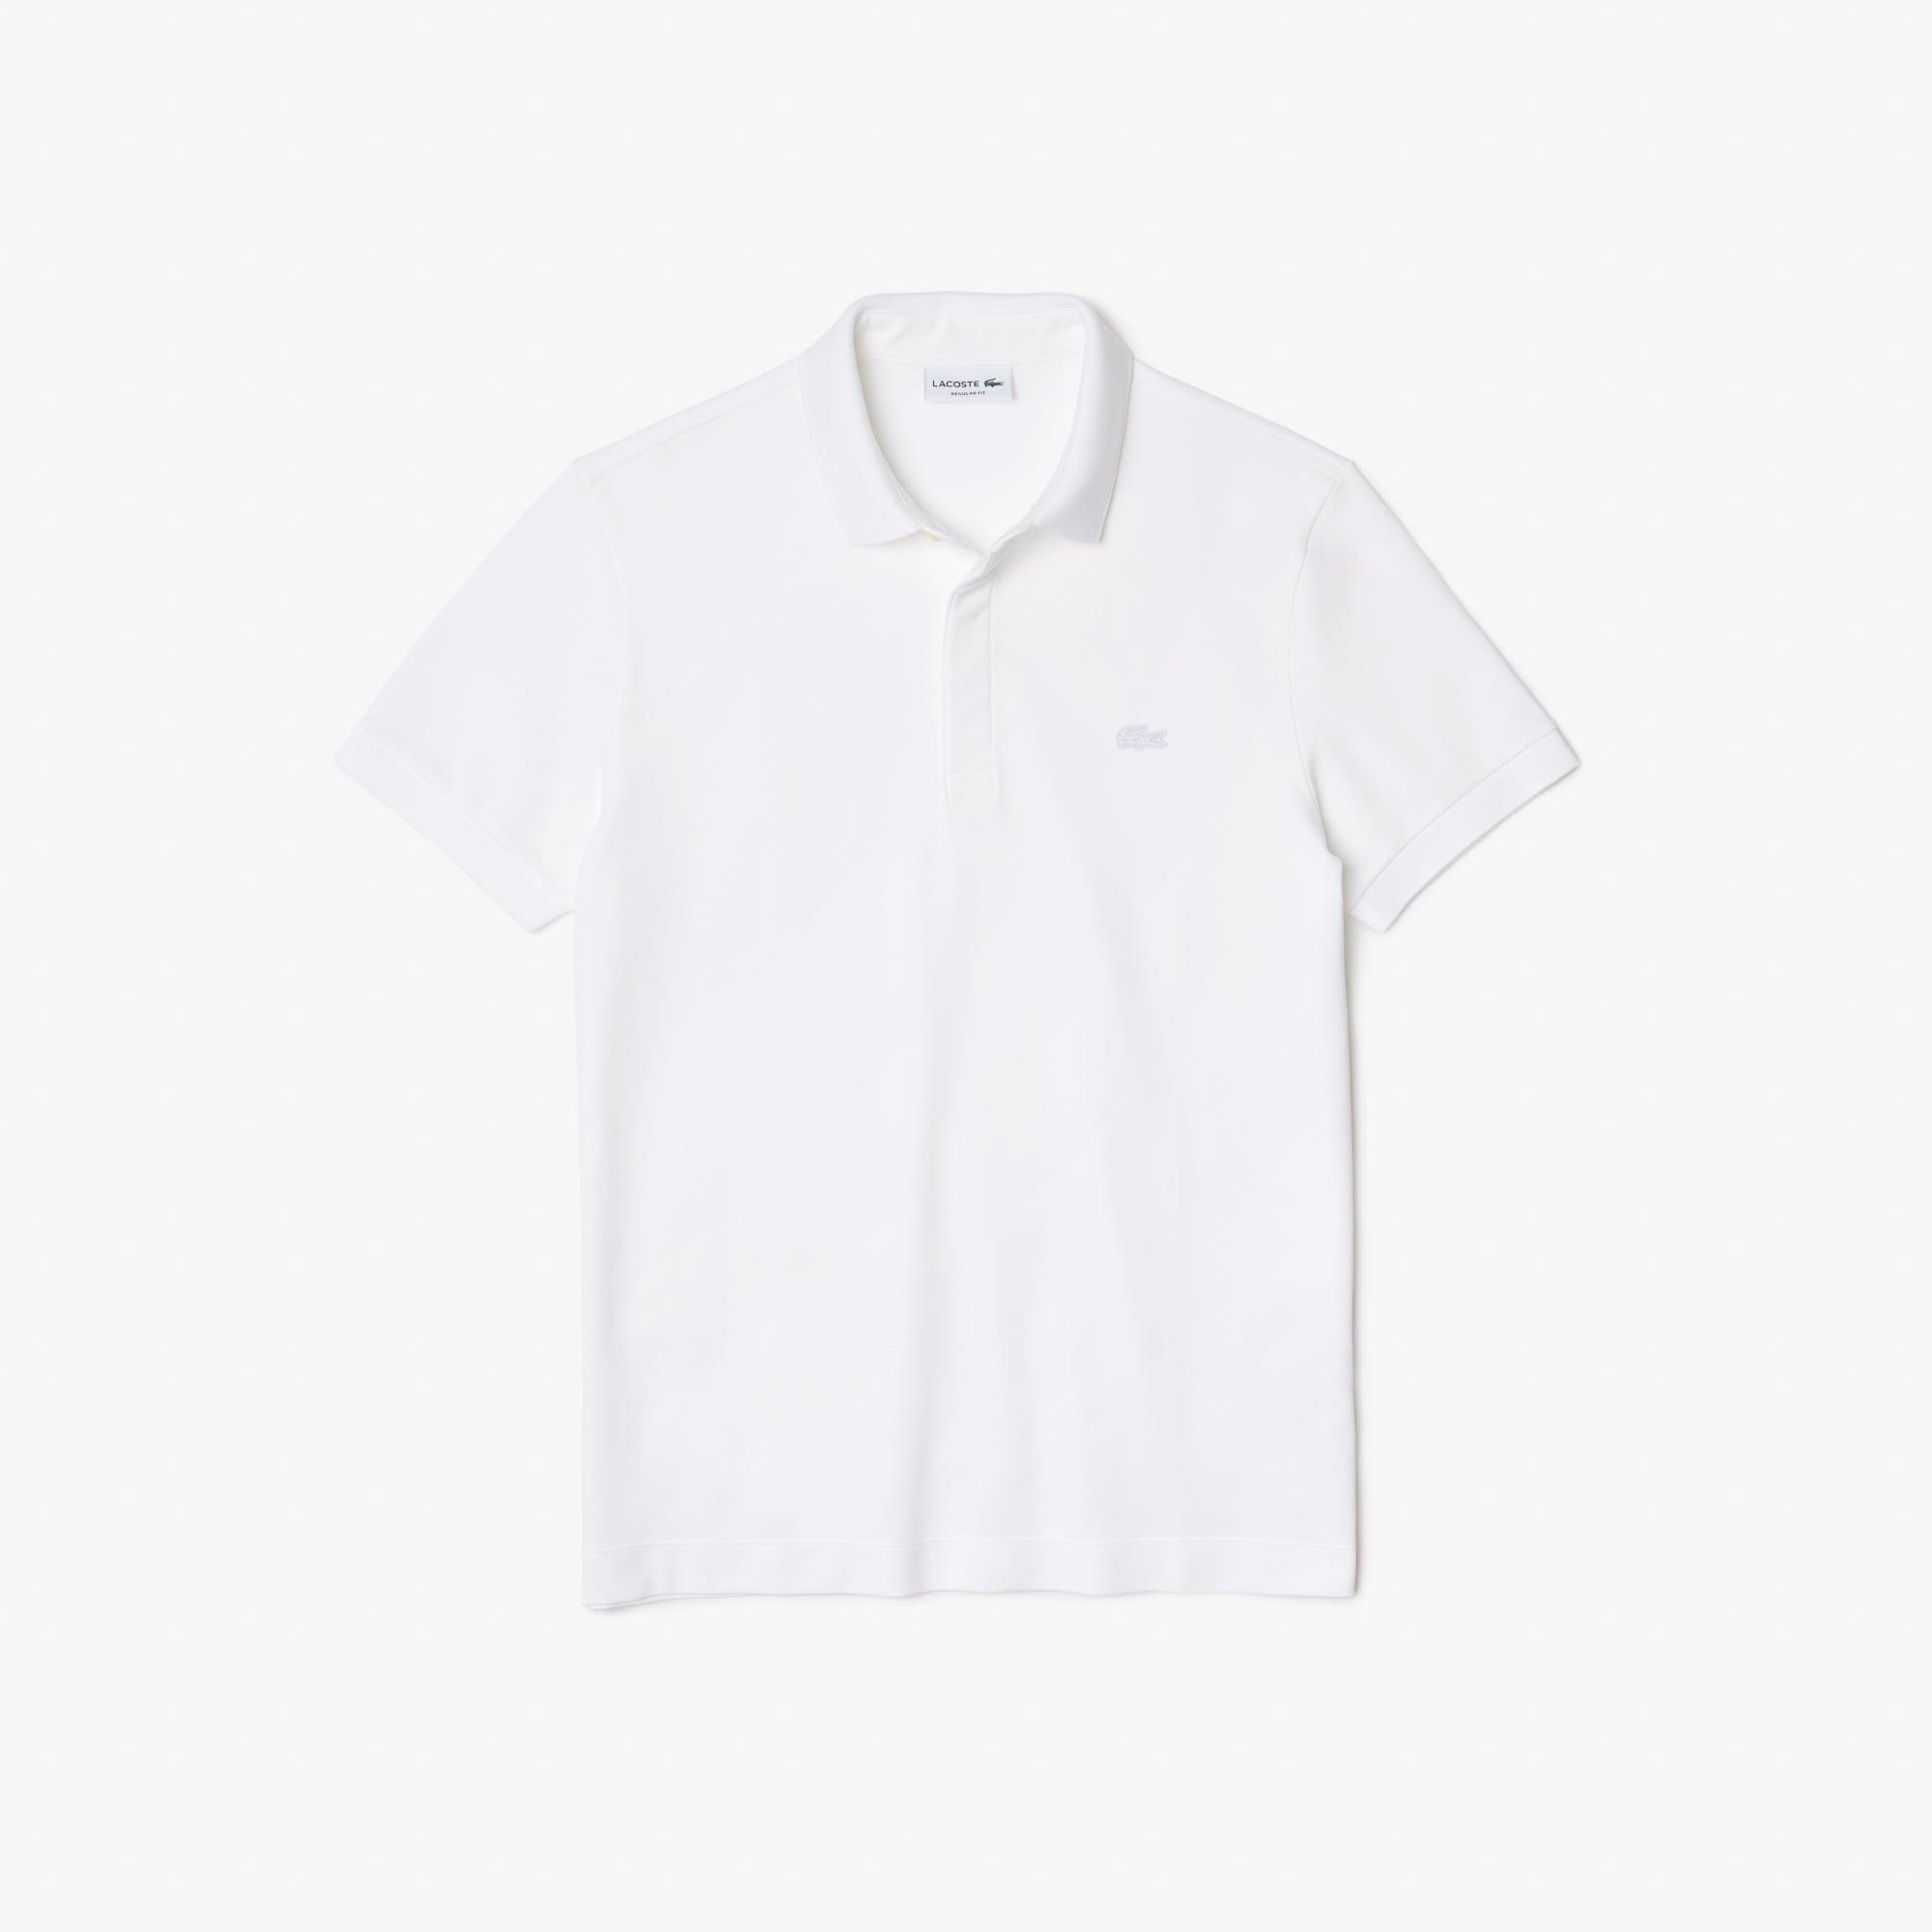 c055405e99 Men s Lacoste Paris Polo Shirt Regular Fit Stretch Cotton Piqué